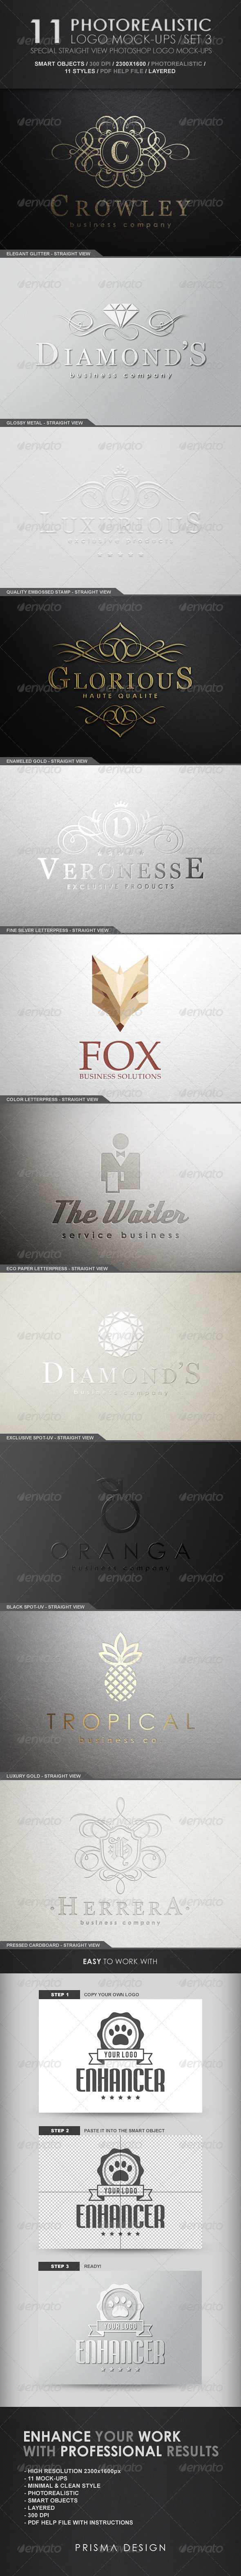 11 Photorealistic Logo Mock-Ups / Set 3 - Logo Product Mock-Ups